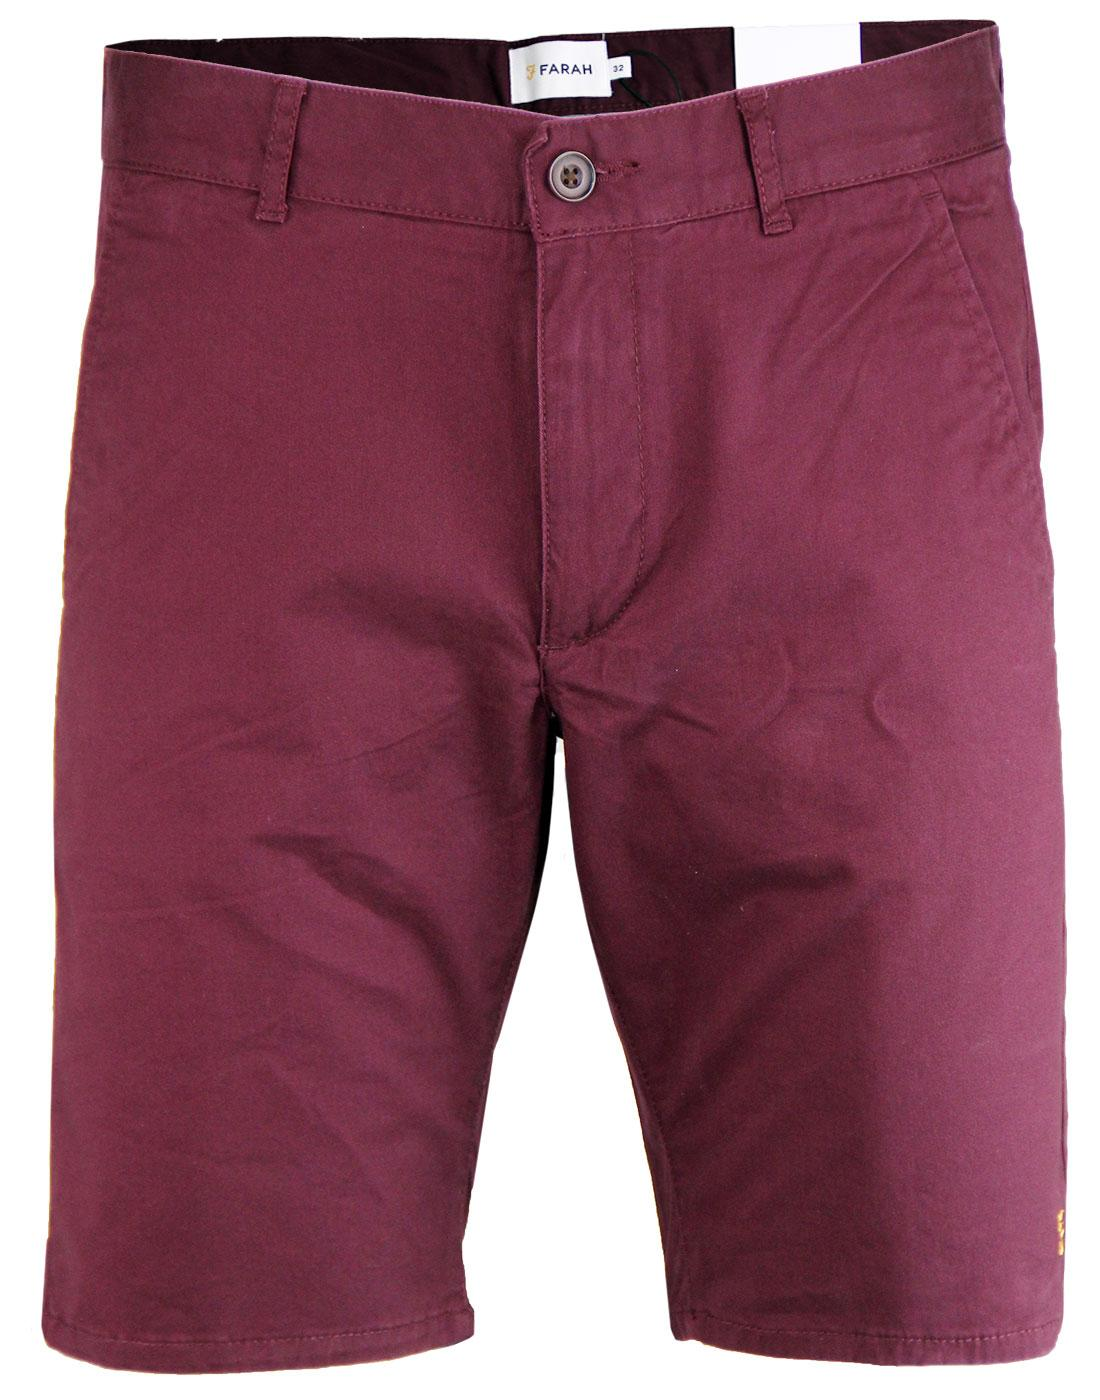 Hawk FARAH Retro Sixties Cotton Twill Chino Shorts